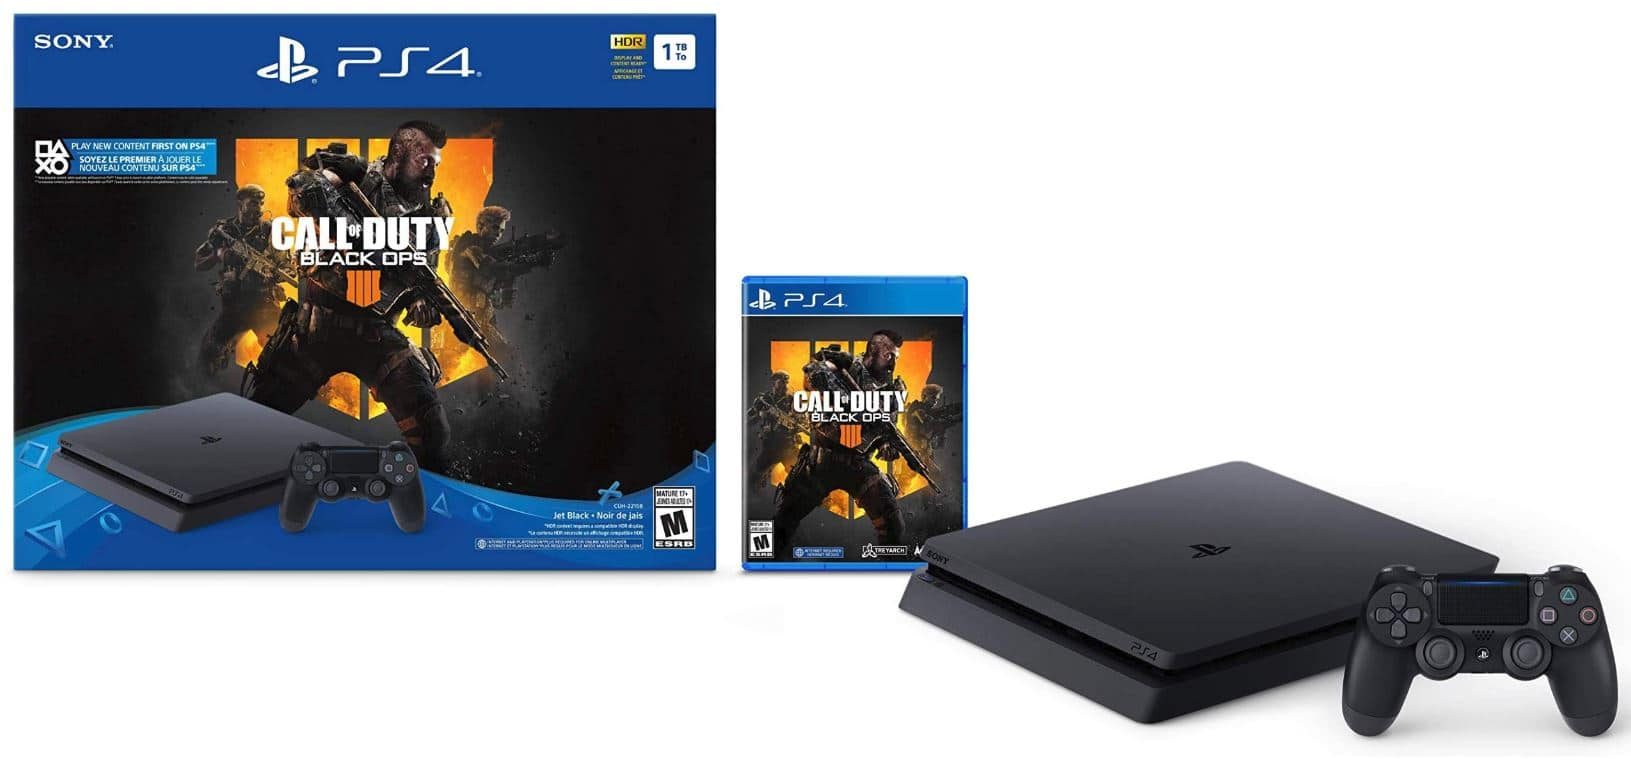 87814c1f75315 This Holiday's Best PlayStation 4 Bundle Deals - Slickdeals.net